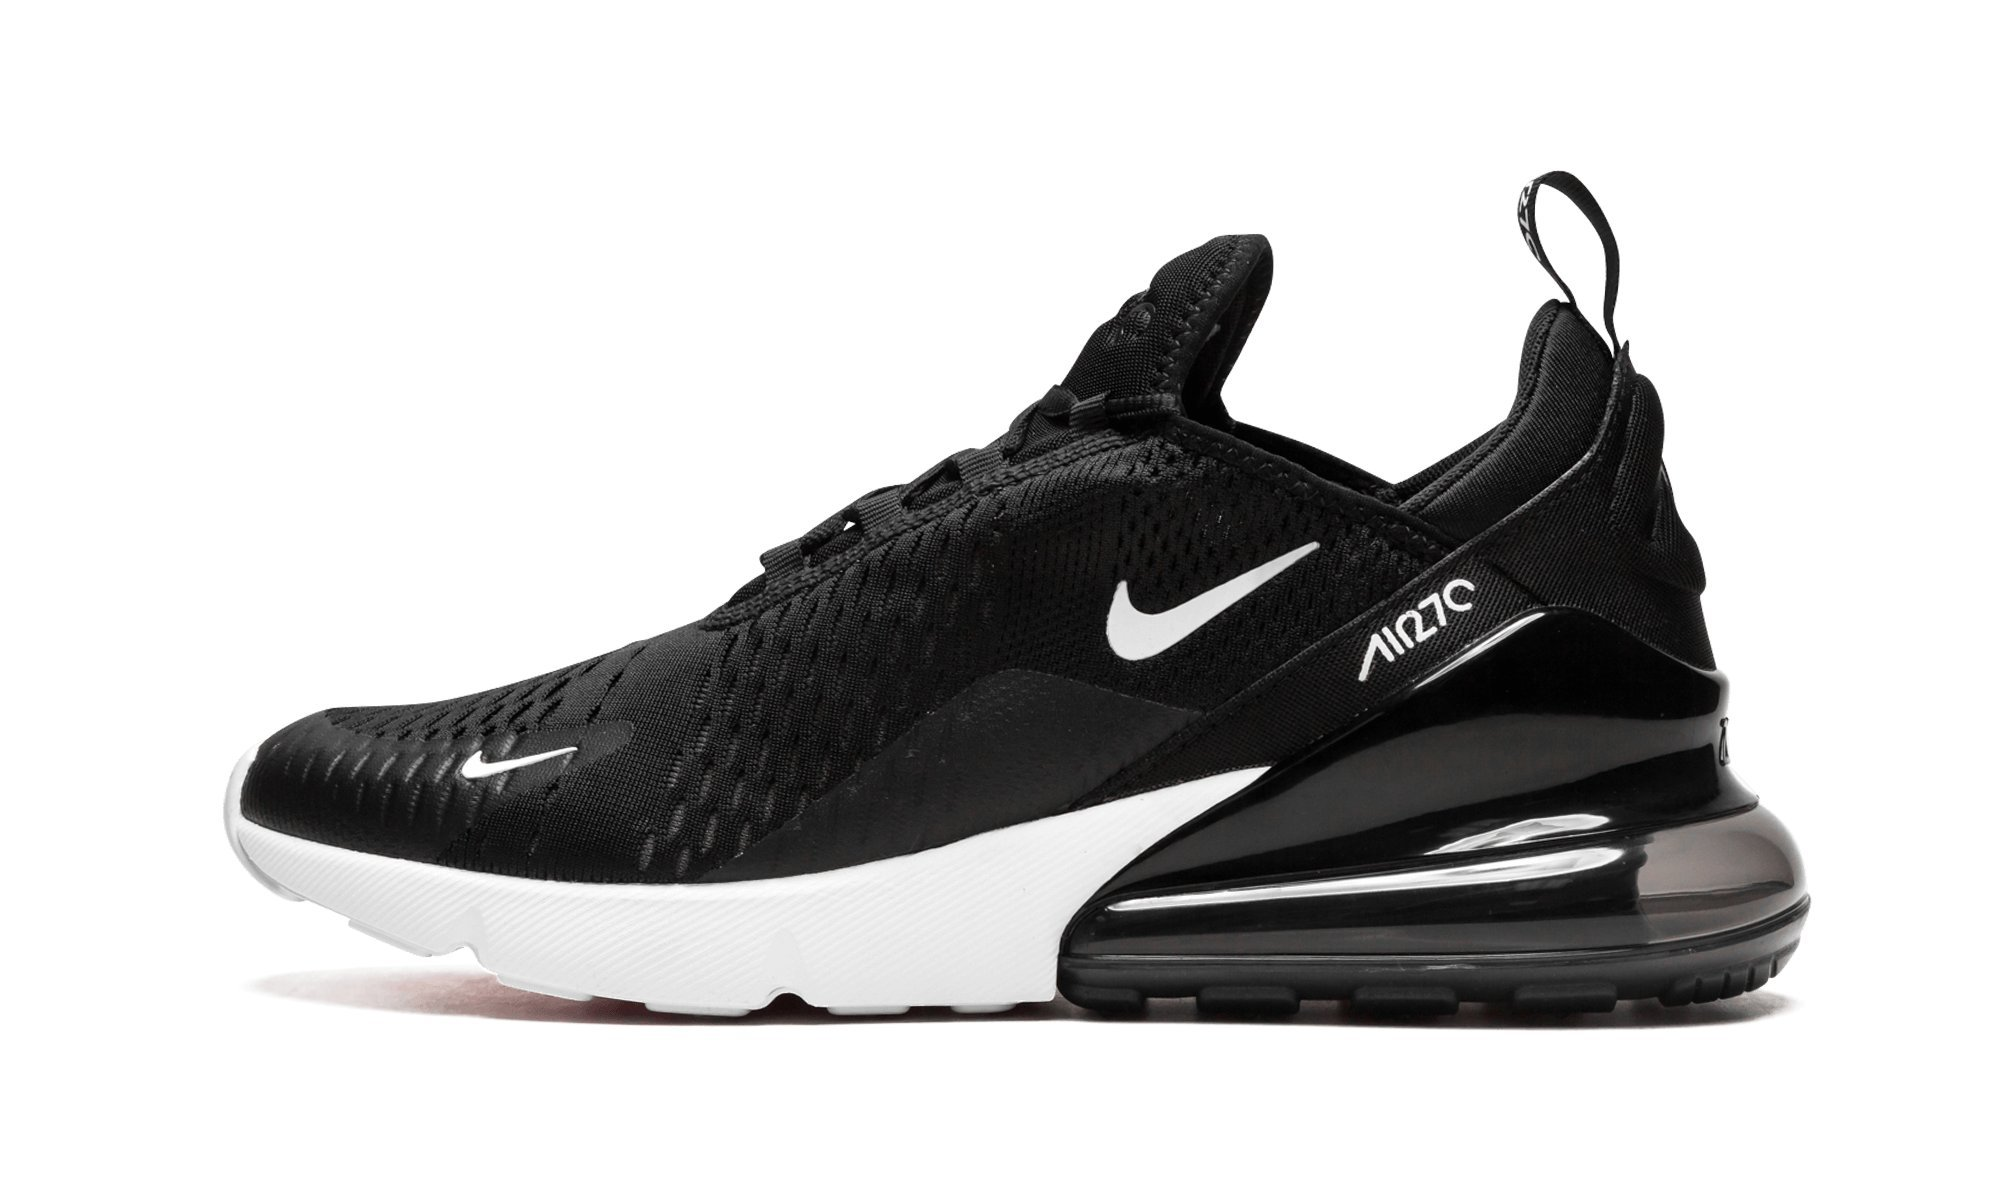 the best attitude 7040f 2b55a Galleon - Nike Mens Air Max 270 Running Shoes Black White Solar Red  Anthracite AH8050-002 Size 9.5